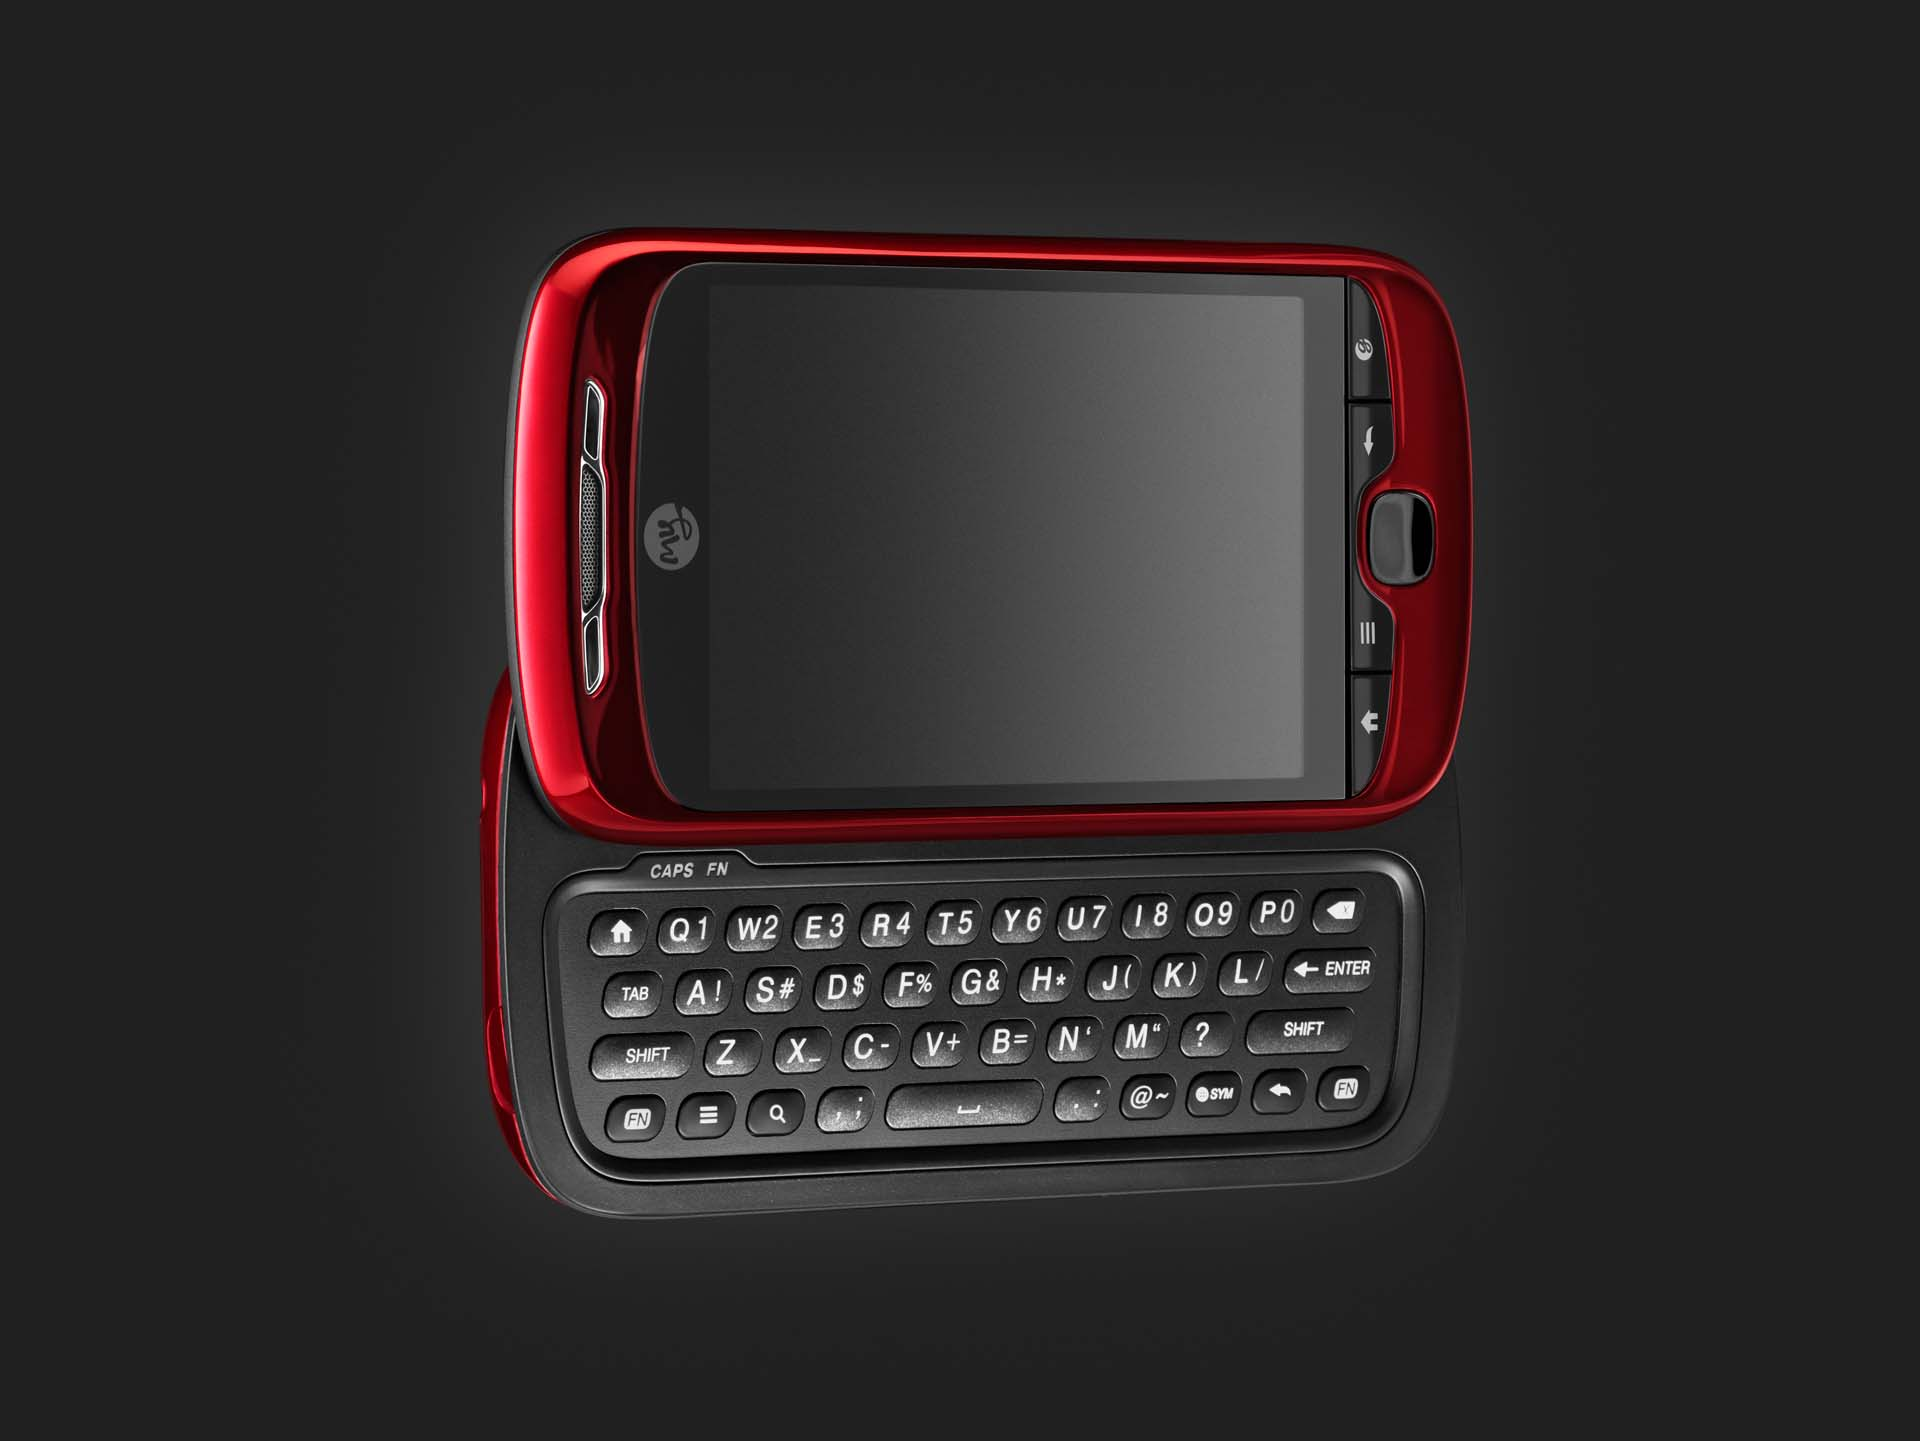 BR_Tmobile_Red_Front_34_Keyboard_05.jpg